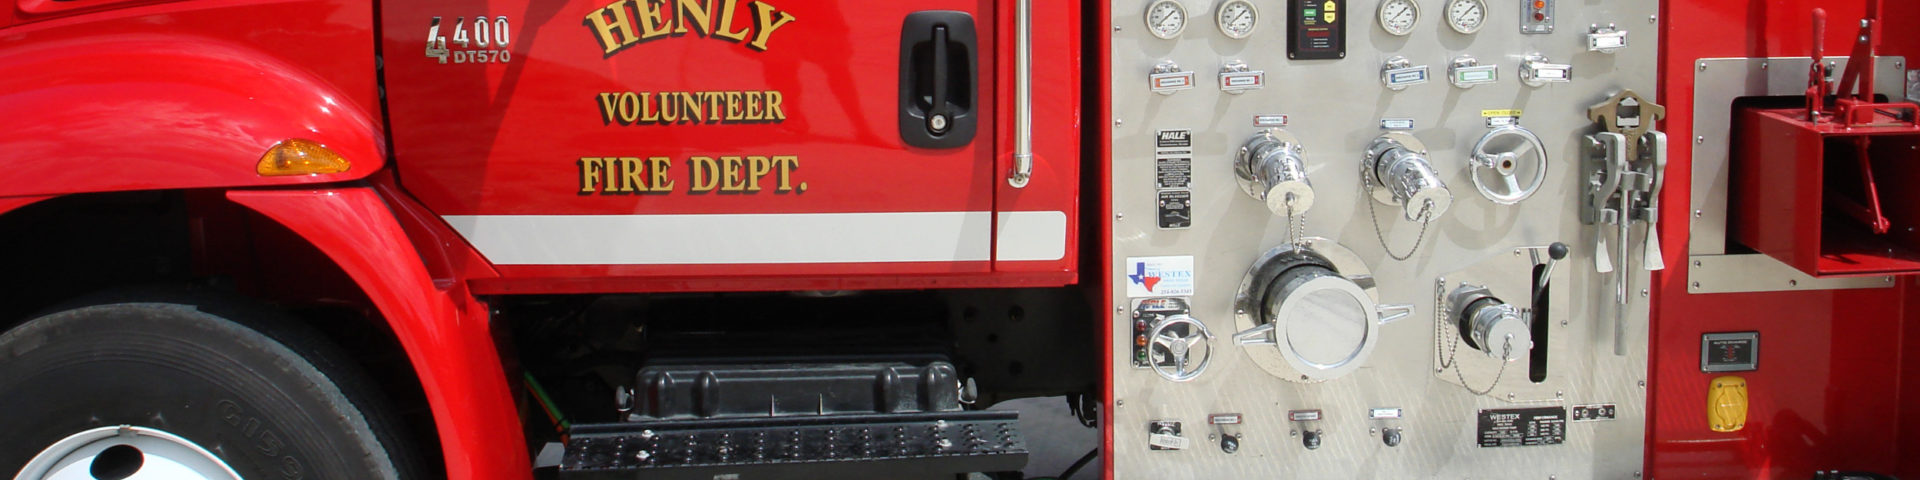 Henly South Fire Trucks